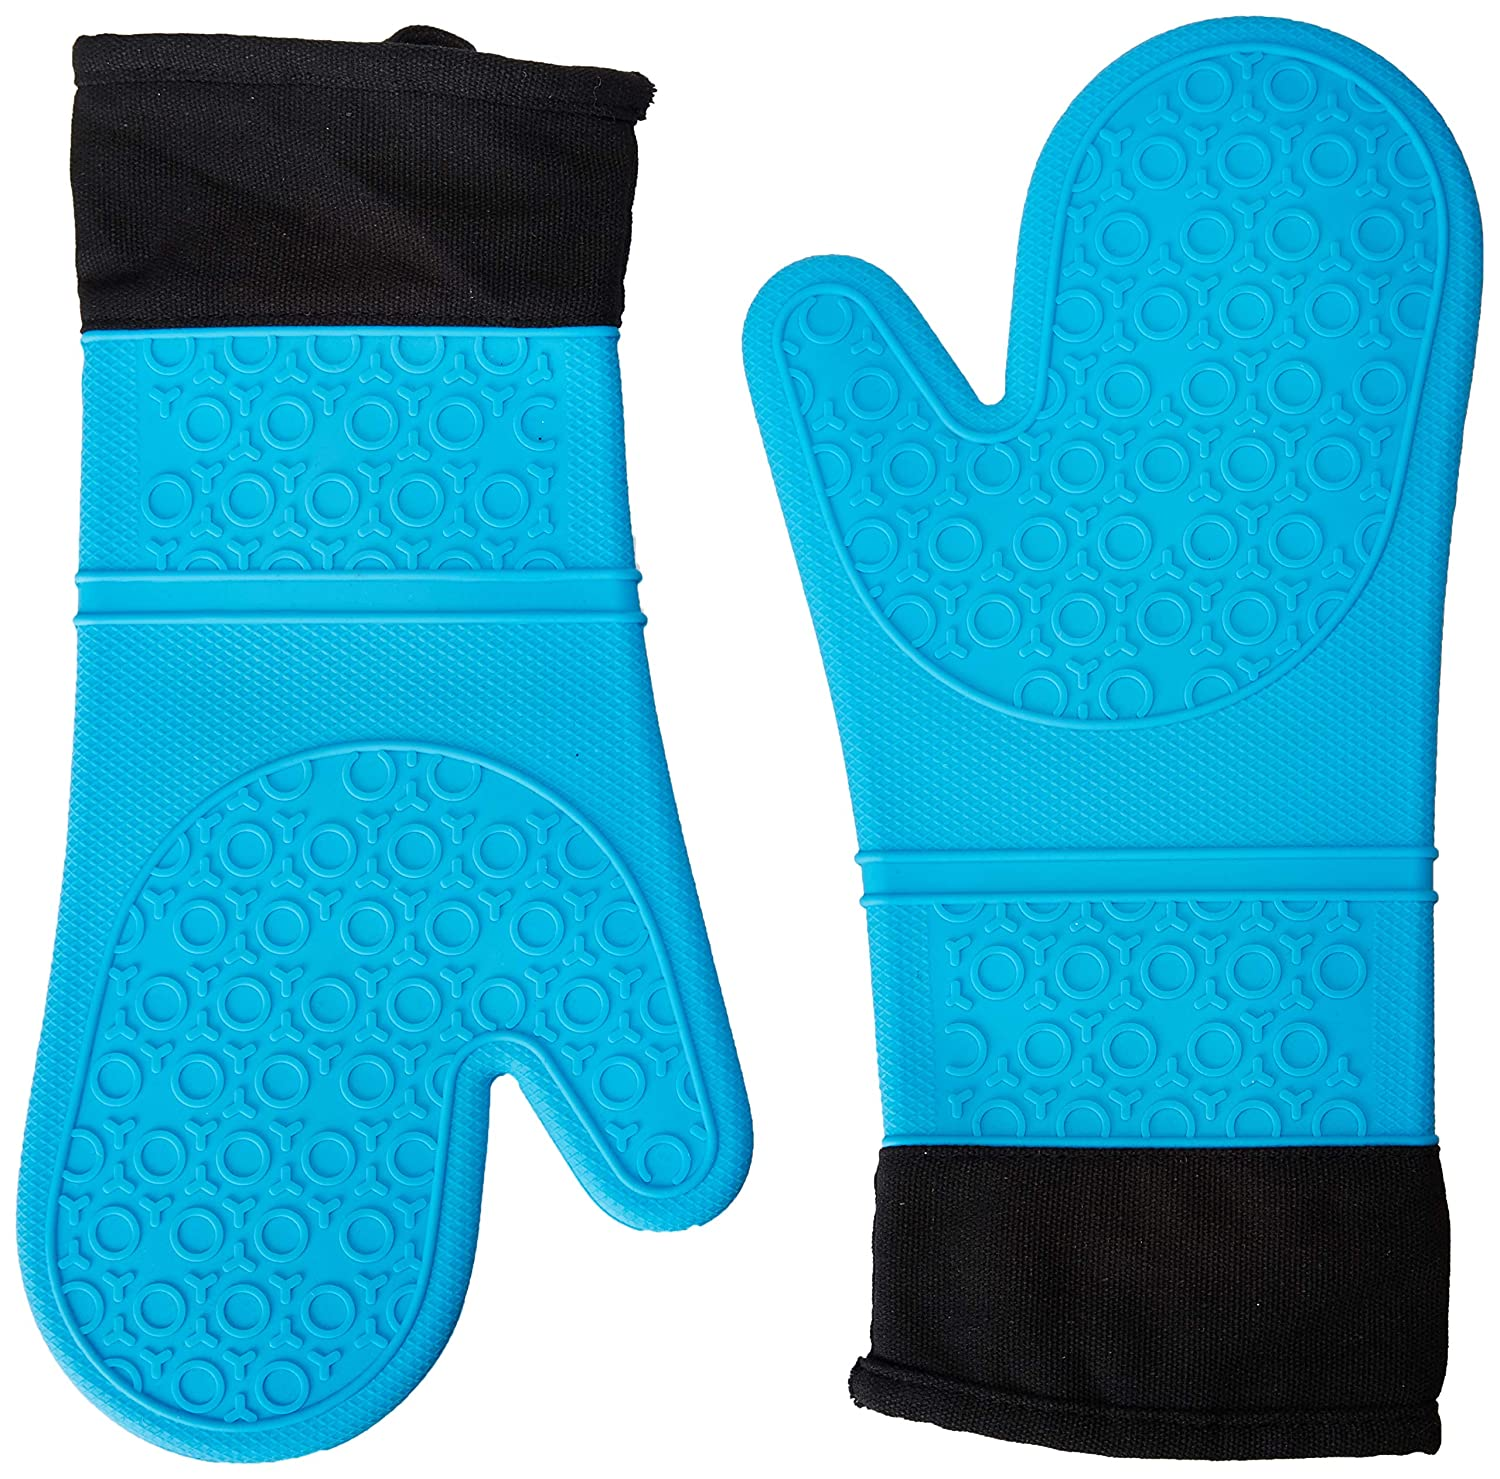 We The Planet Extra Long Premium Silicone Oven Mitts - 1 Pair (2 pc), Blue | Quilted Lining for Comfort, Heat Resistant | Non-Slip Grip for Potholders Kitchen Oven BBQ Grill